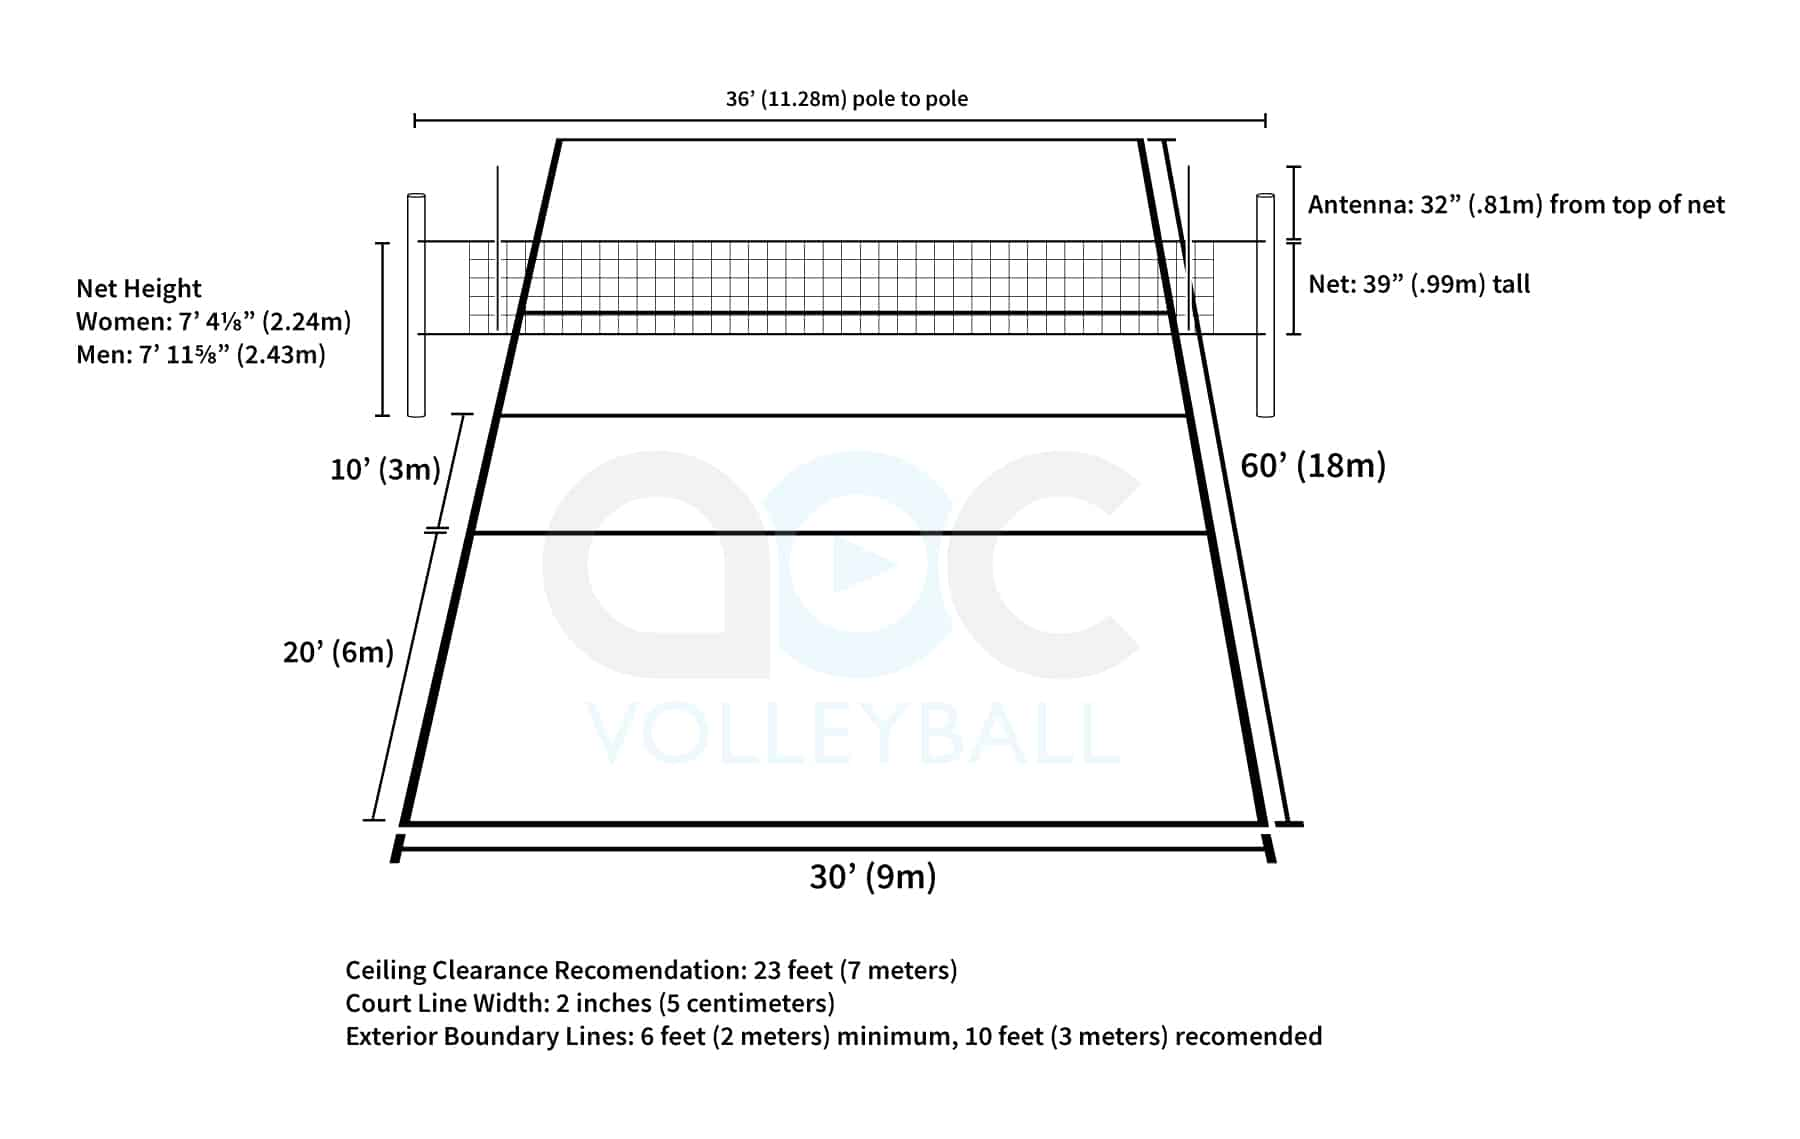 volleyball court size in meter, volleyball court size net height, volleyball net height, volleyball court size in feet in hindi, volleyball net size and height, volleyball court dimensions in meters